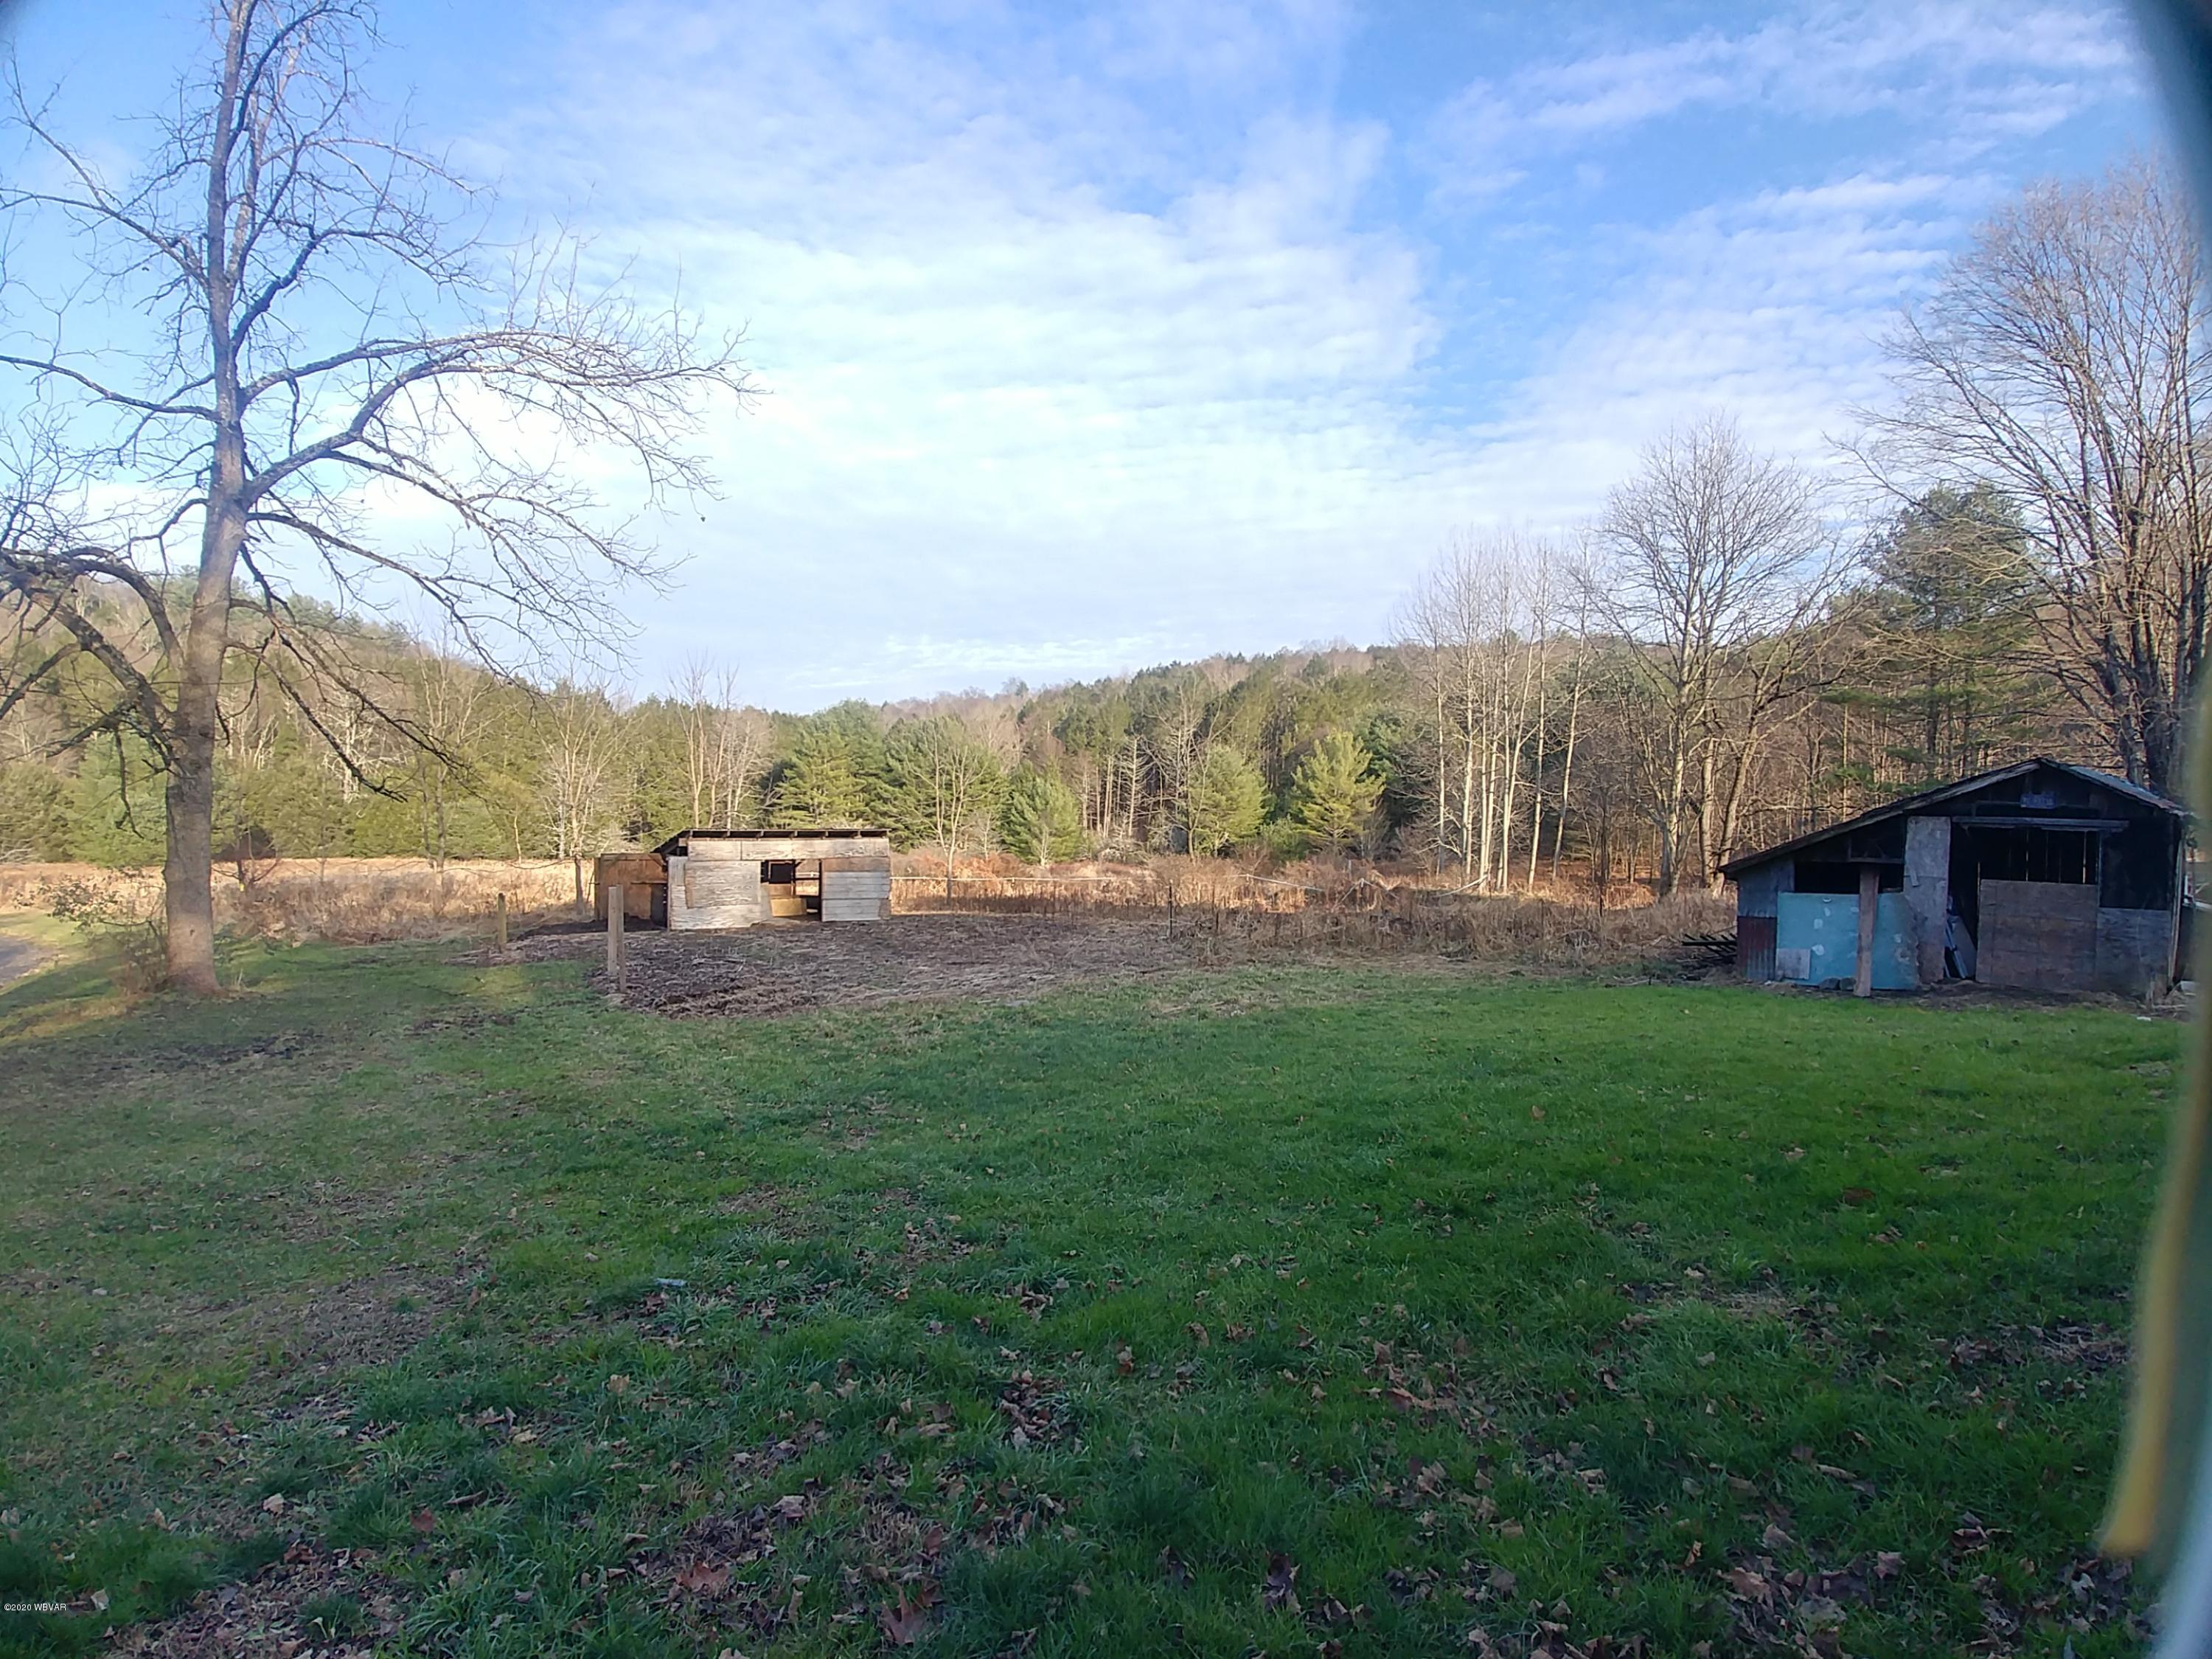 921 BARTO HOLLOW ROAD,Hughesville,PA 17737,5 Bedrooms Bedrooms,1 BathroomBathrooms,Residential,BARTO HOLLOW,WB-89438